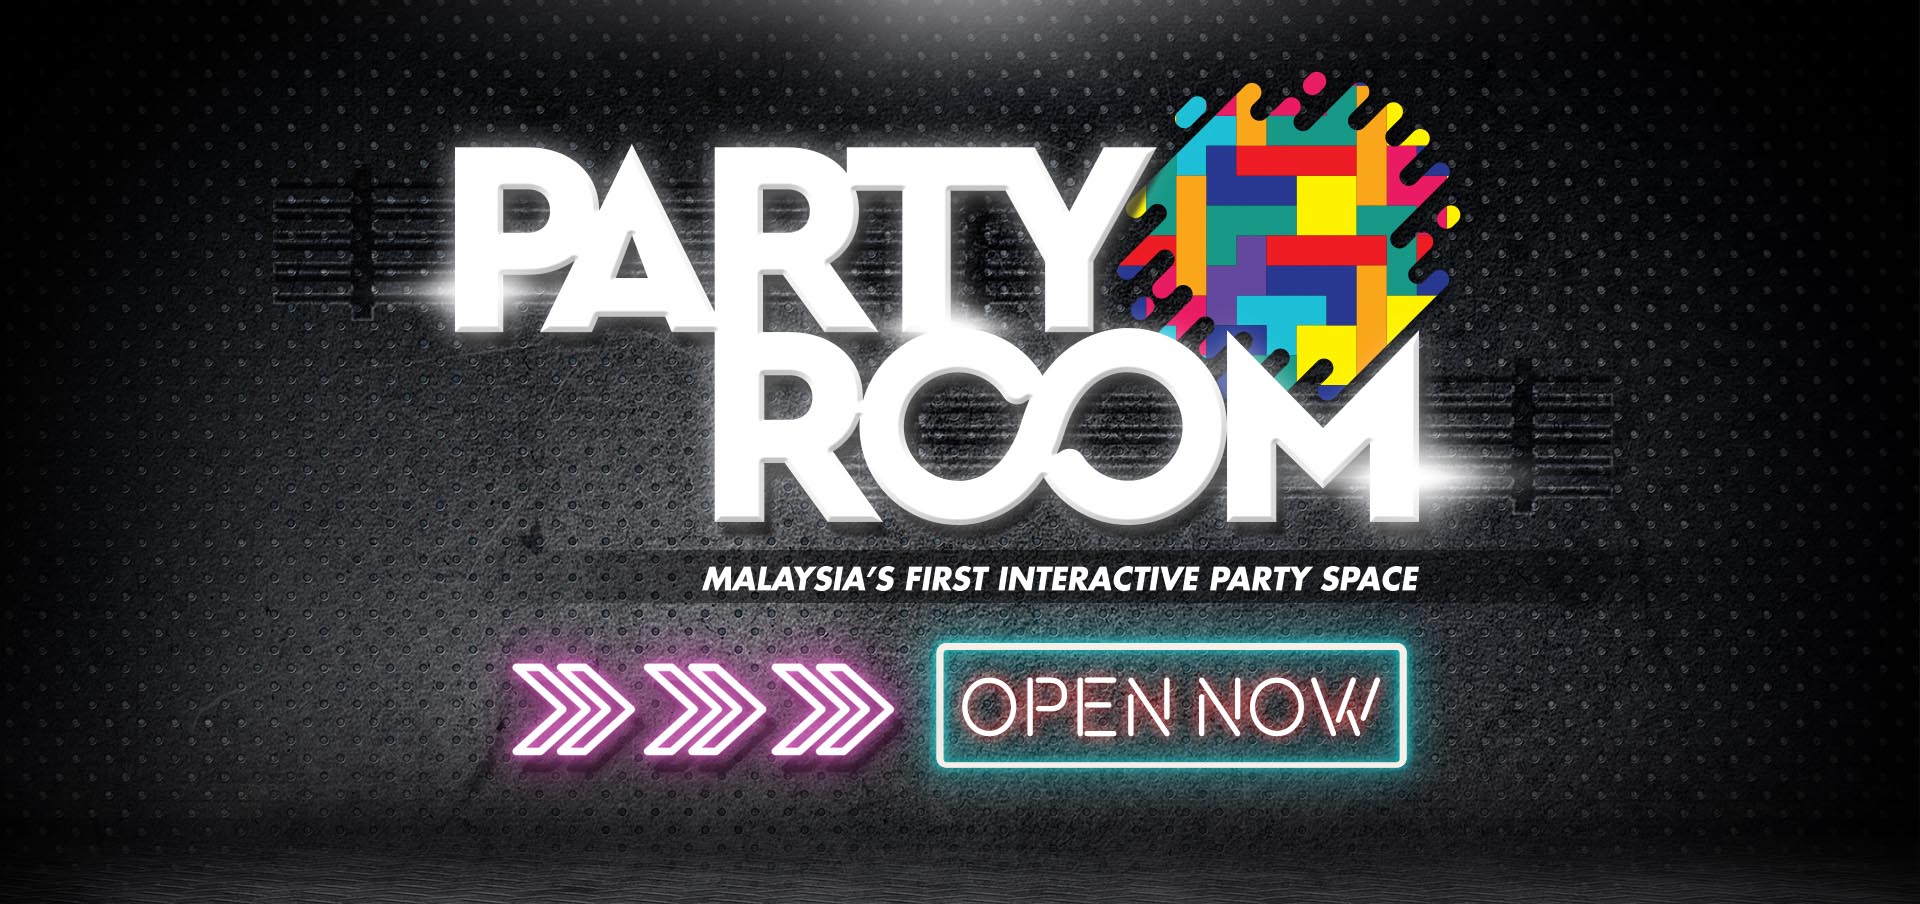 party room - interactive party space is now opened